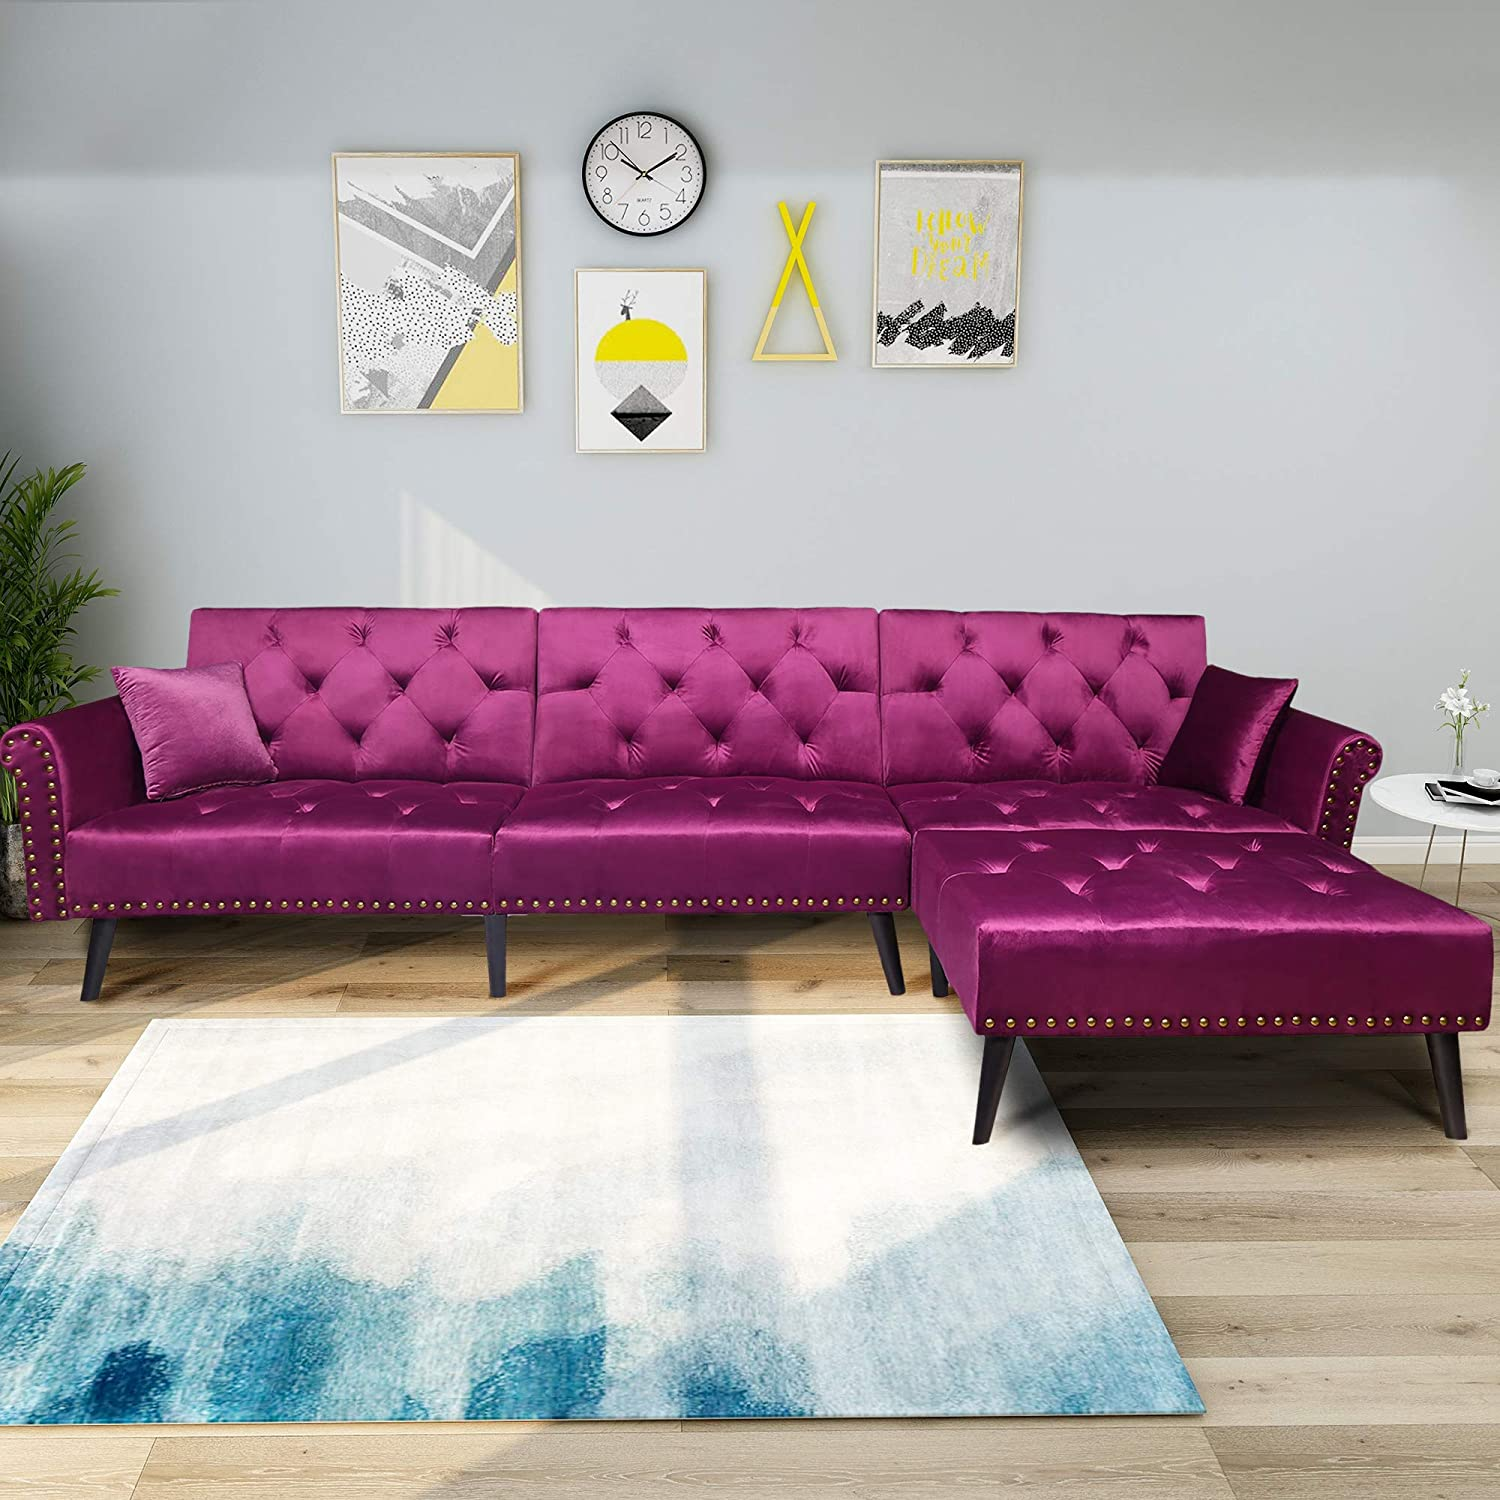 Admirable Upholstered Mid Century Sectional Sofa Futon Couch With Reversible Chaise With Adjustable Back Sofa Bed Purple Evergreenethics Interior Chair Design Evergreenethicsorg